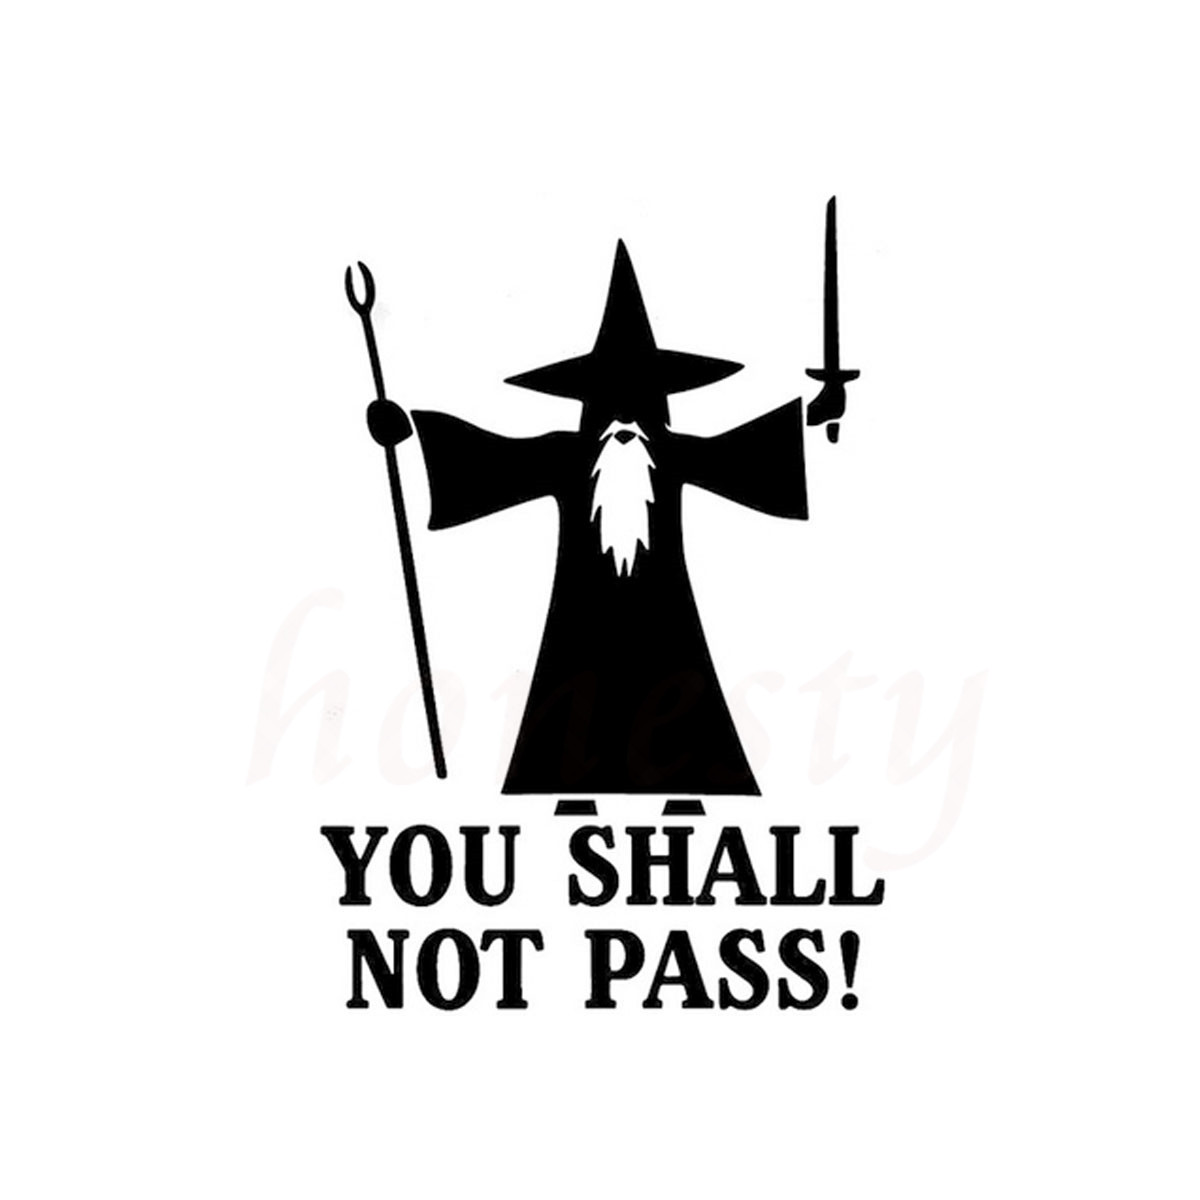 You Shall Not Pass Angry Gandolf Car Stickers Wall Home Glass Window Door Laptop Auto Truck Vinyl Decal Black 11.4cmX16.4cm